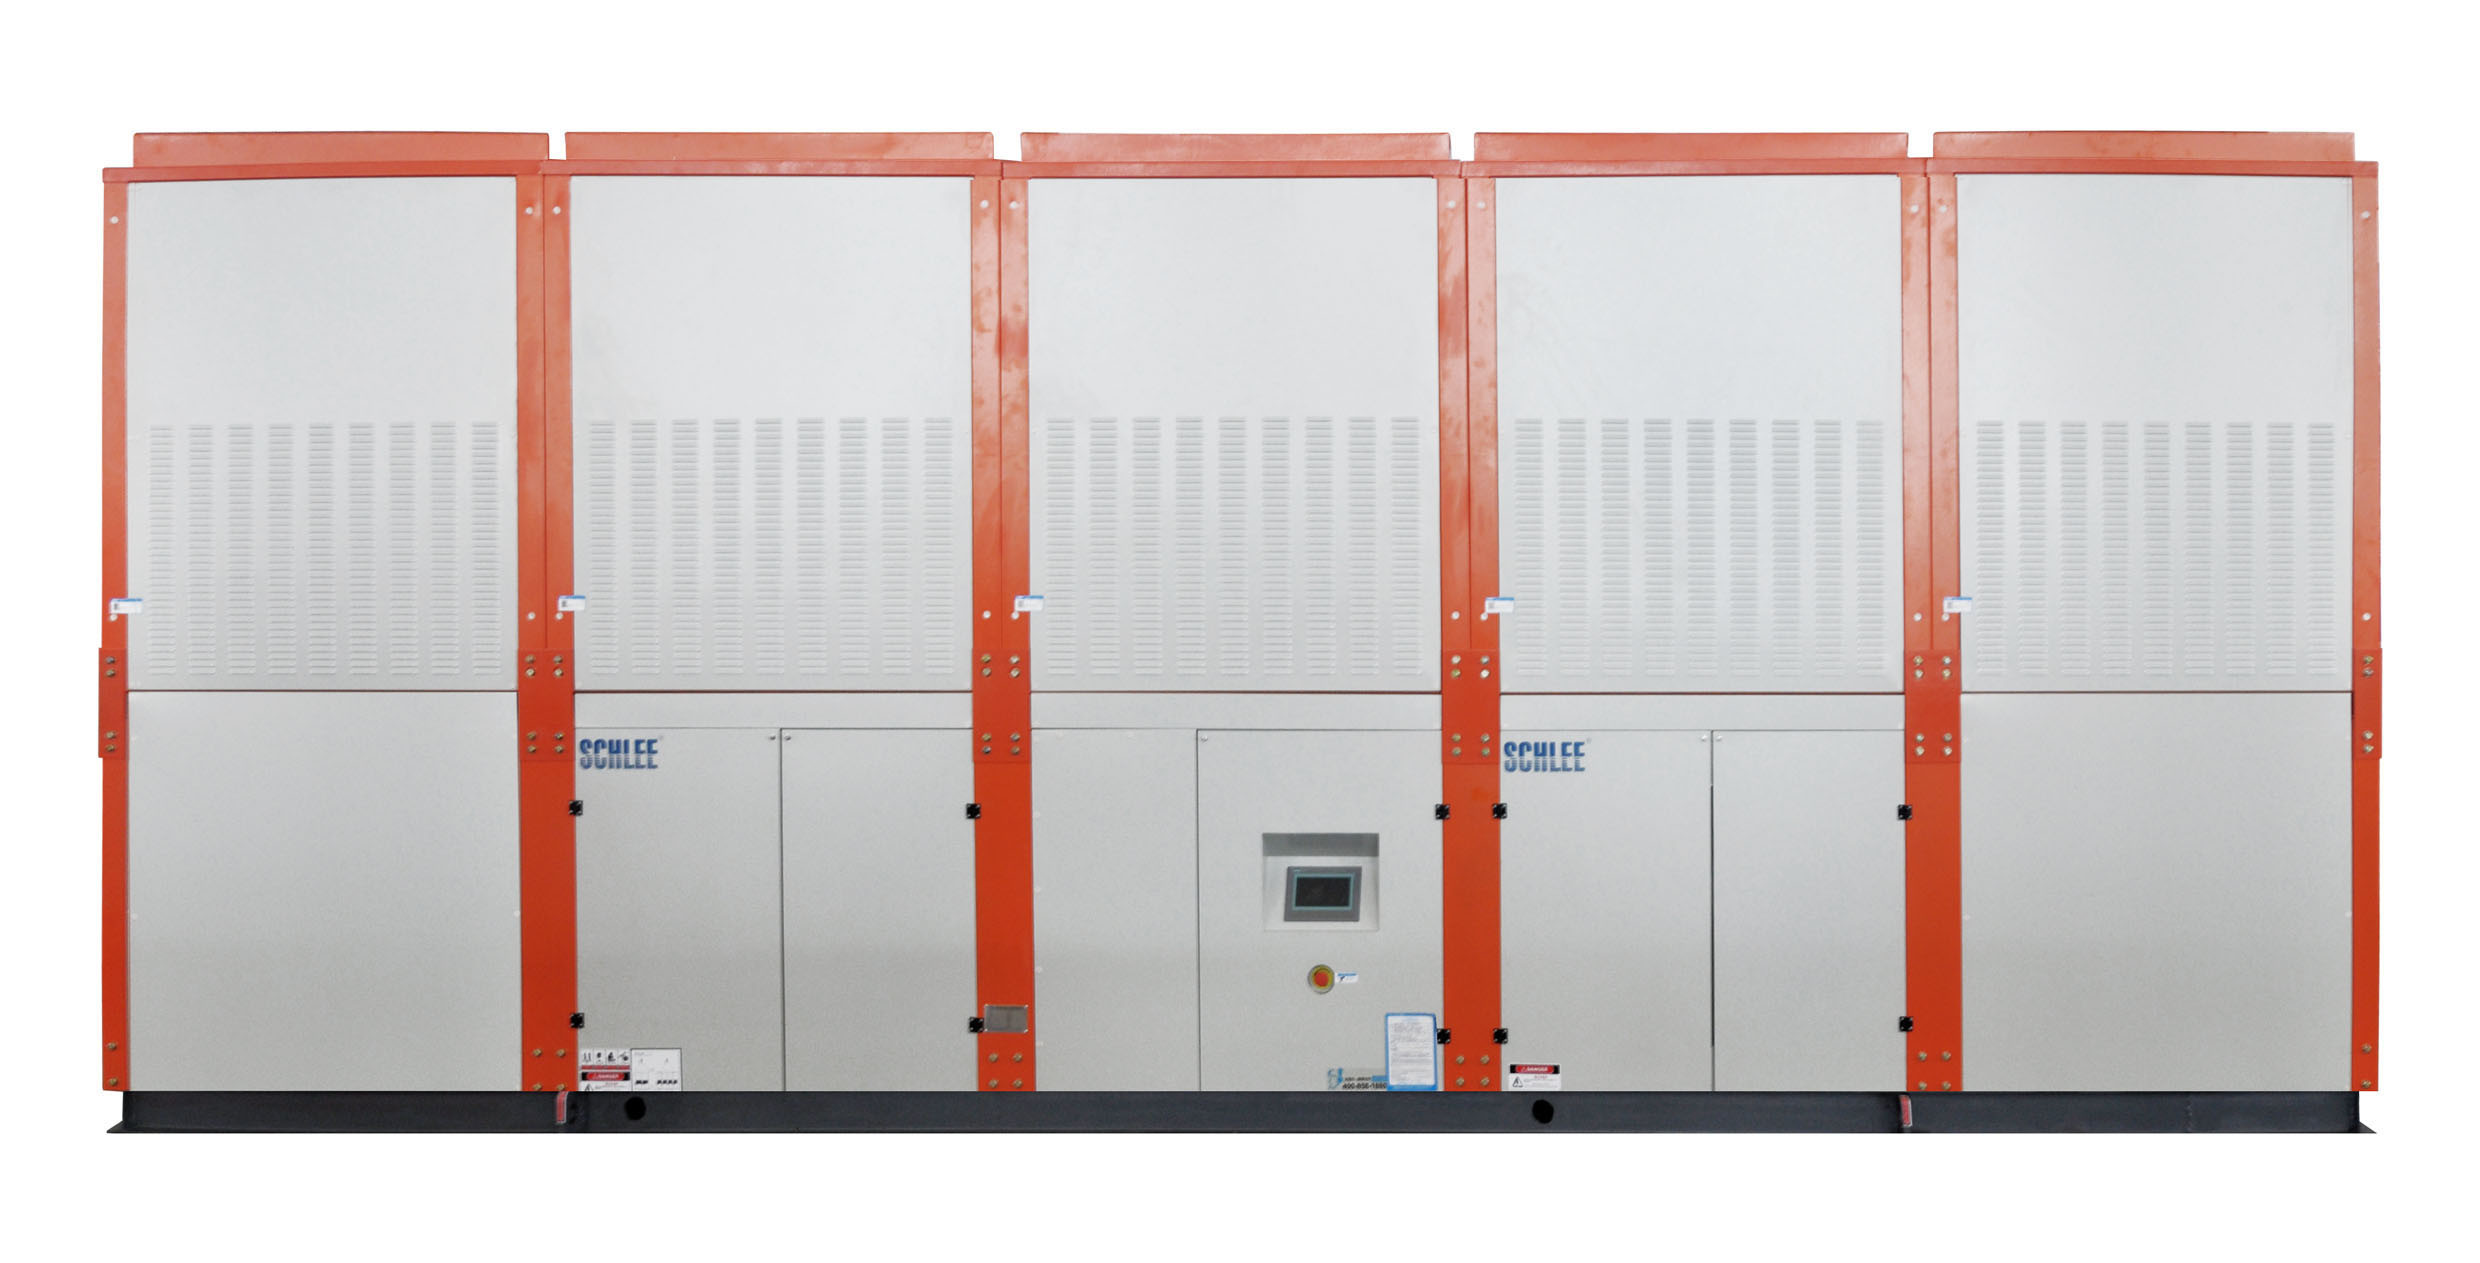 480kw Cooling Capacity Industrial Integrated Evaporative Cooled Water Chiller for Dichloromethane Cooling